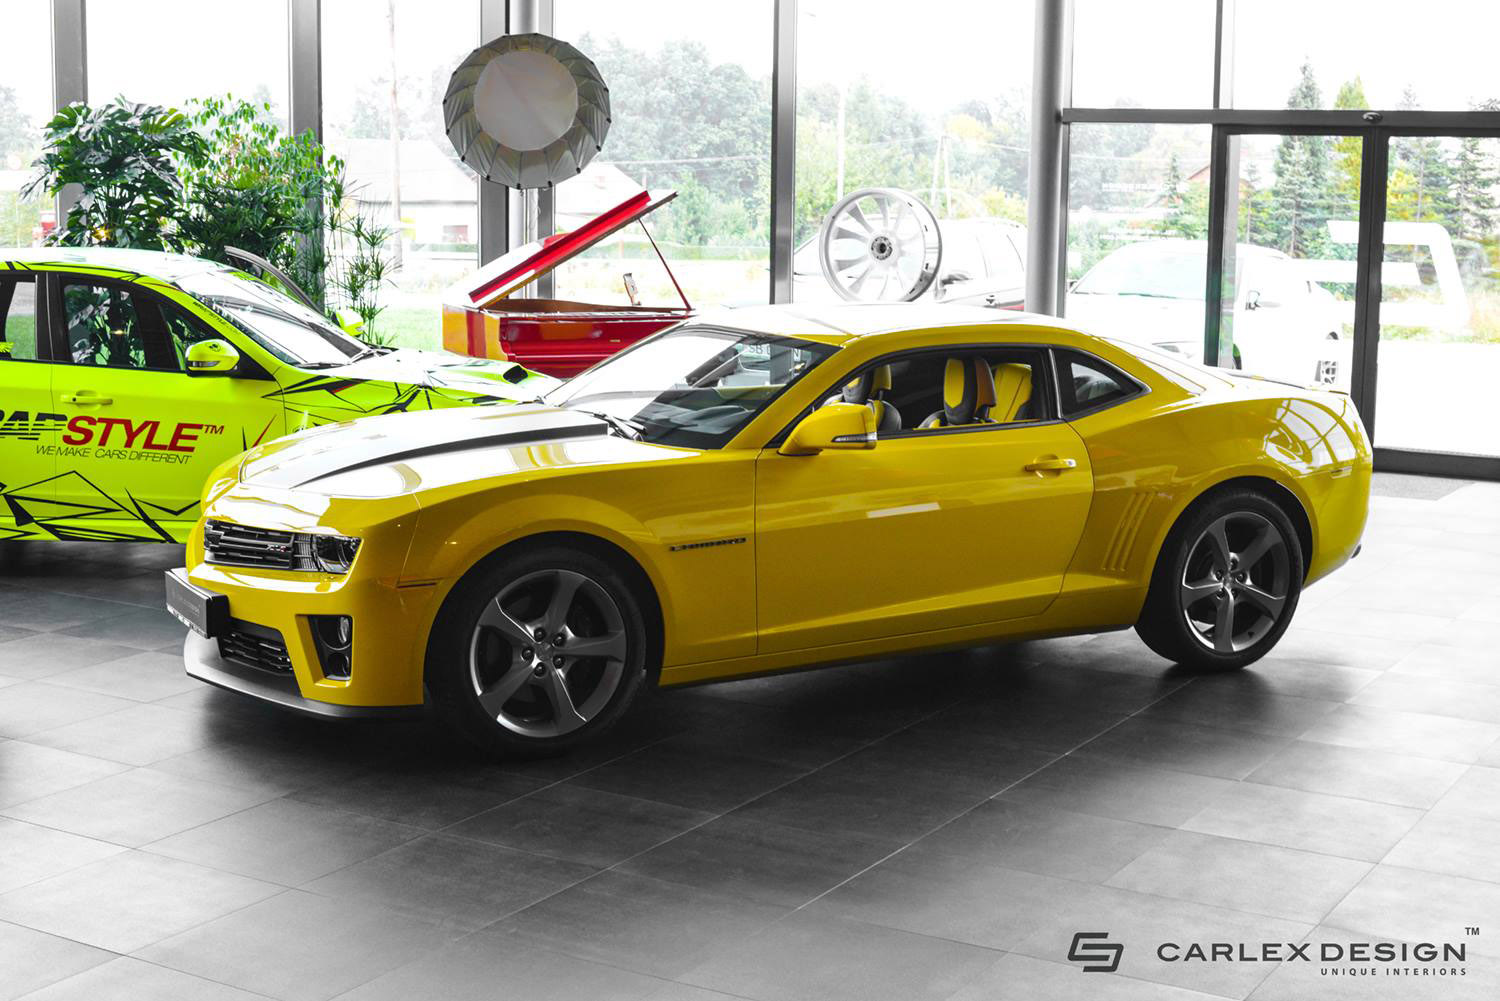 Bumblebee Inside And Out Meet Carlex Design Chevrolet